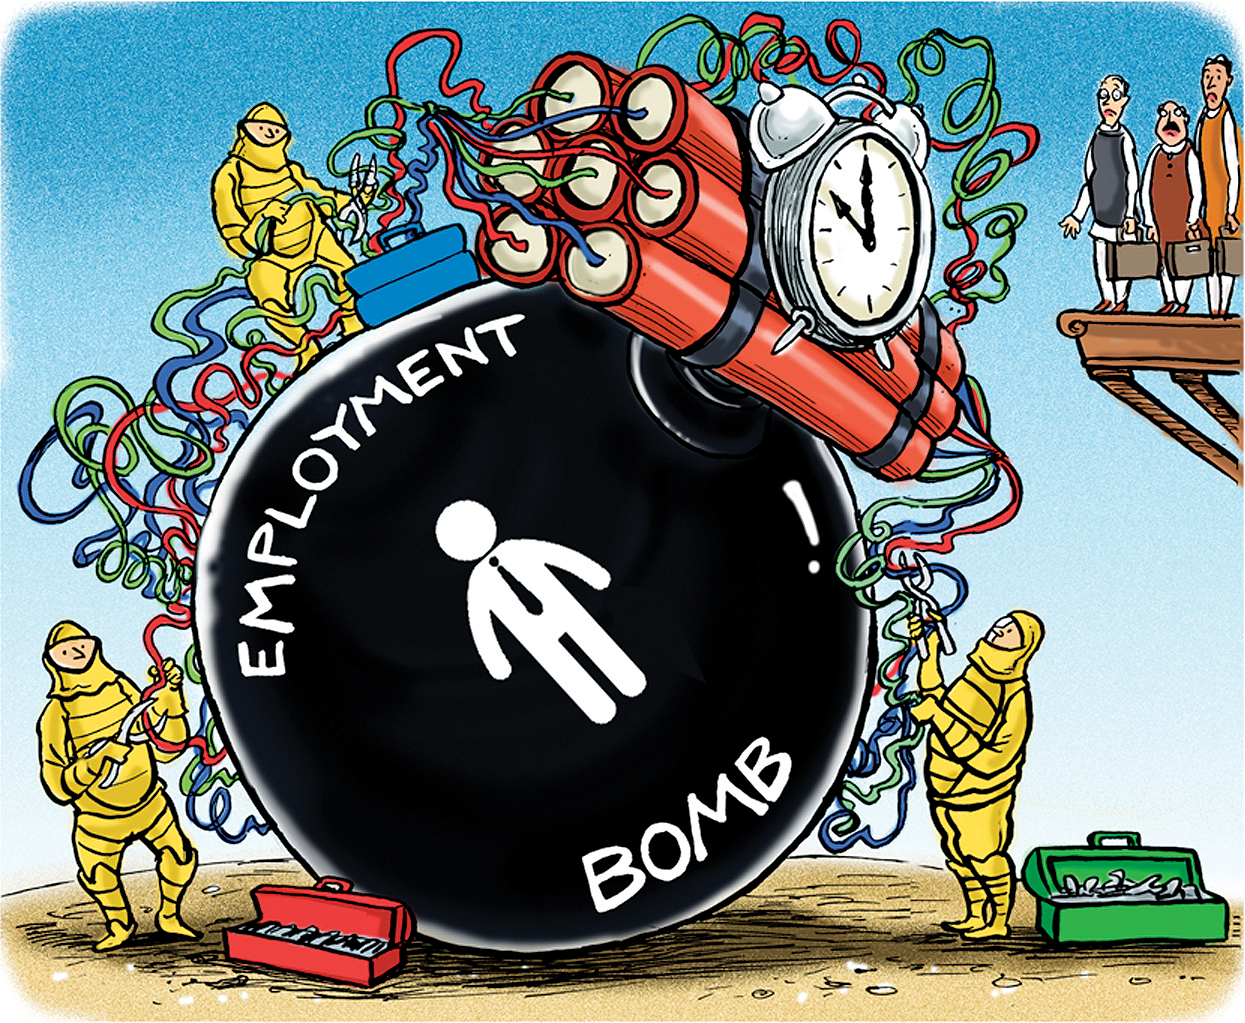 Just some clever lines? India faces a scary jobs crisis.